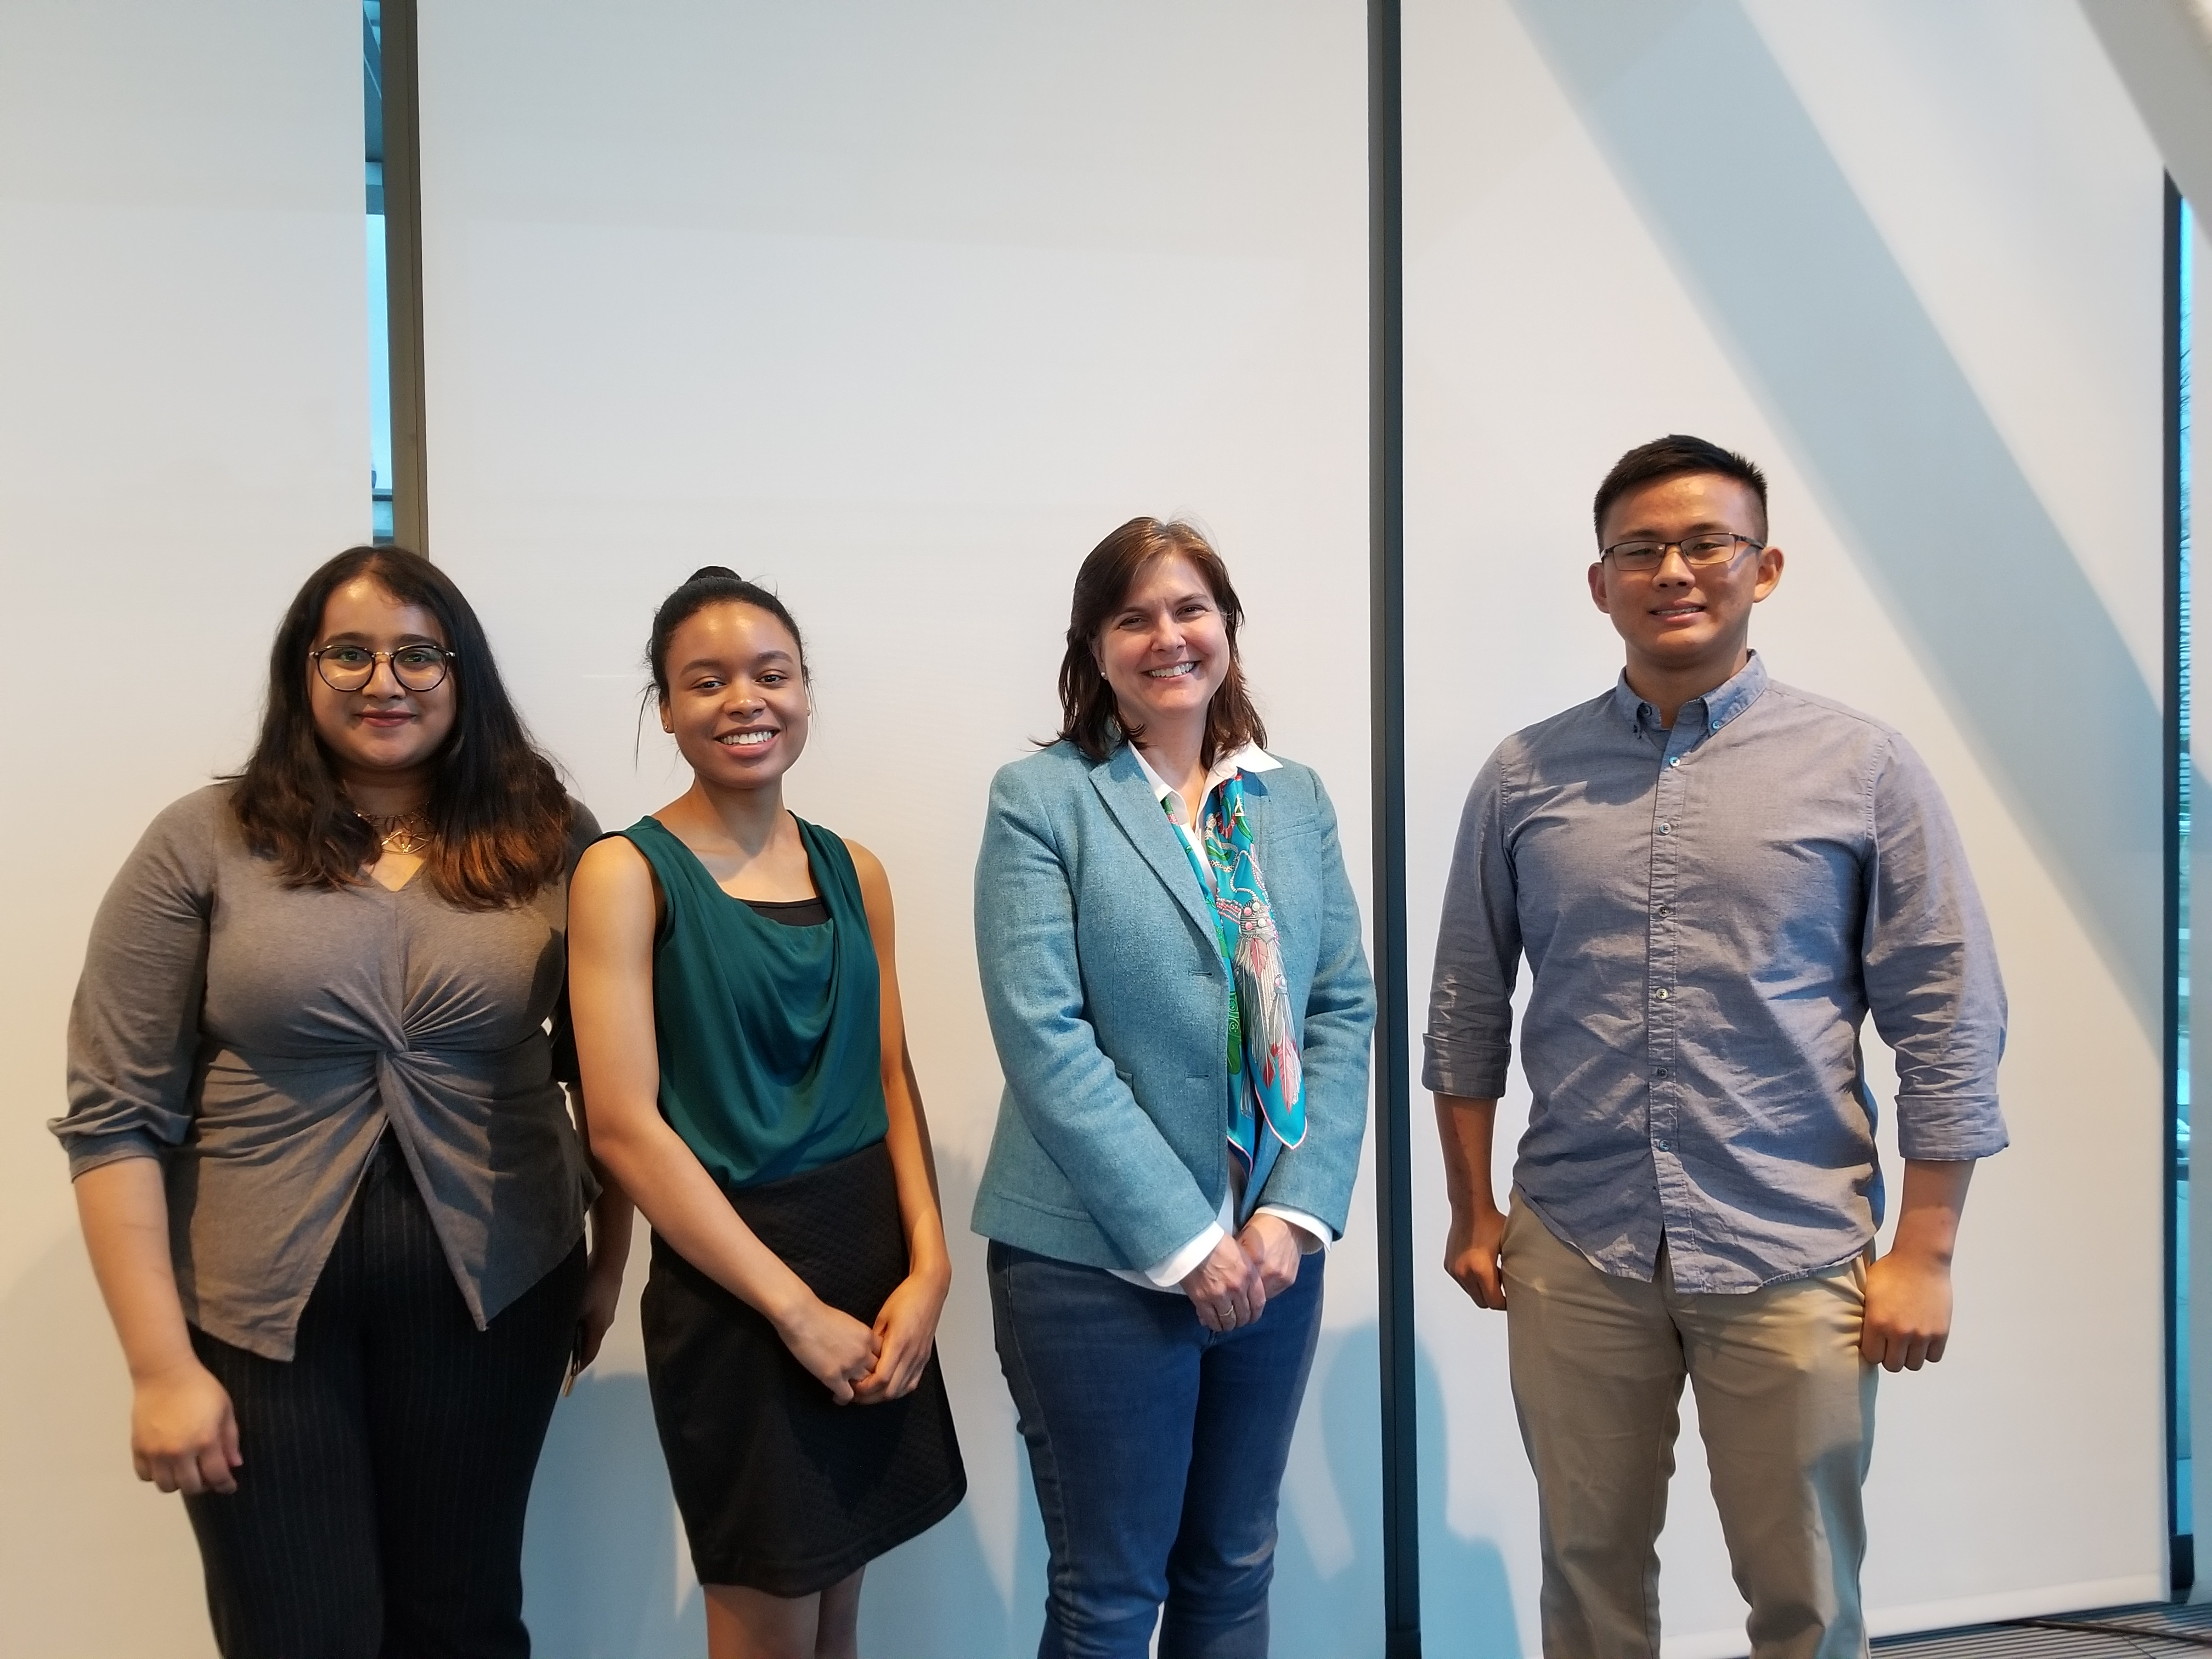 Professor Kathryn Lavelle with her advisees, Ari Menon, Amanda Smith, and Yujie Hu.